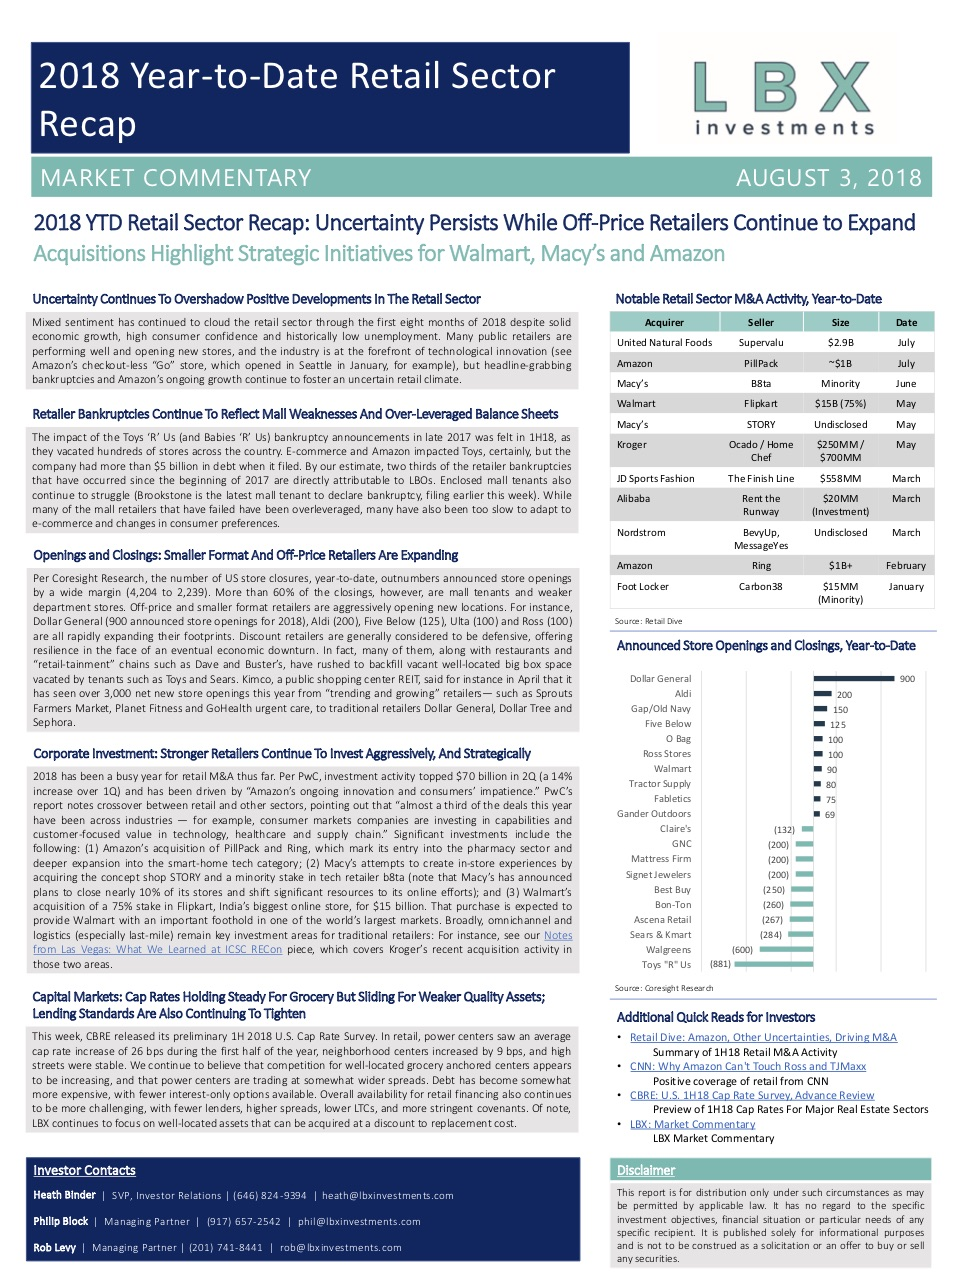 LBX Market Commentary - 2018 Year-to-Date Retail Sector Recap (8.3.18).jpg